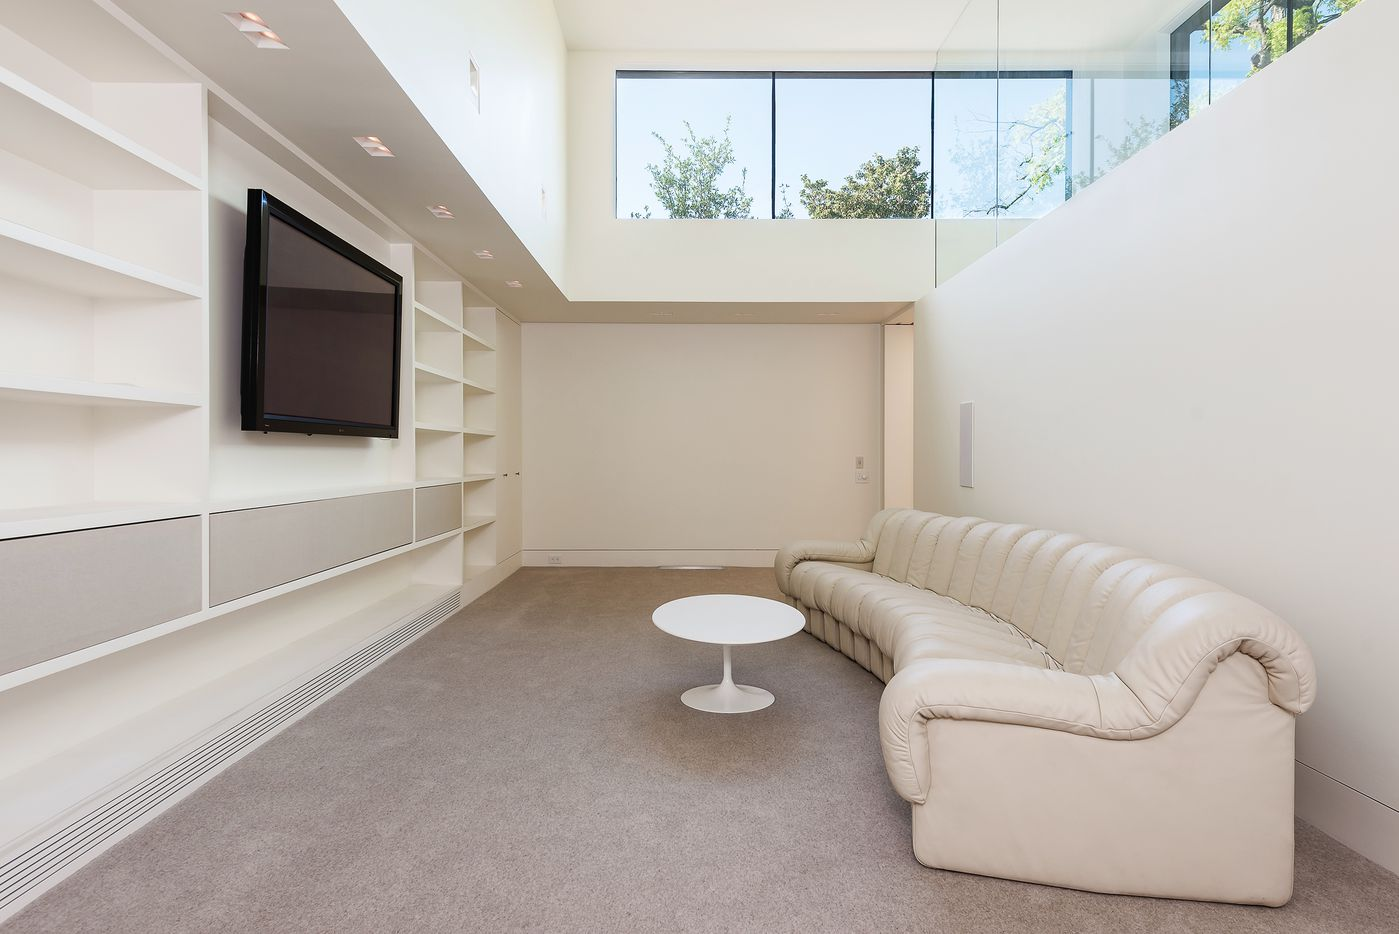 Built in 1978, a Highland Park home on the market is architecturally significant -- originally designed by Frank Welch and recently updated by Max Levy. The home at 3212 Dartmouth has two bedrooms, two bathrooms and one-half bathroom between its two stories.